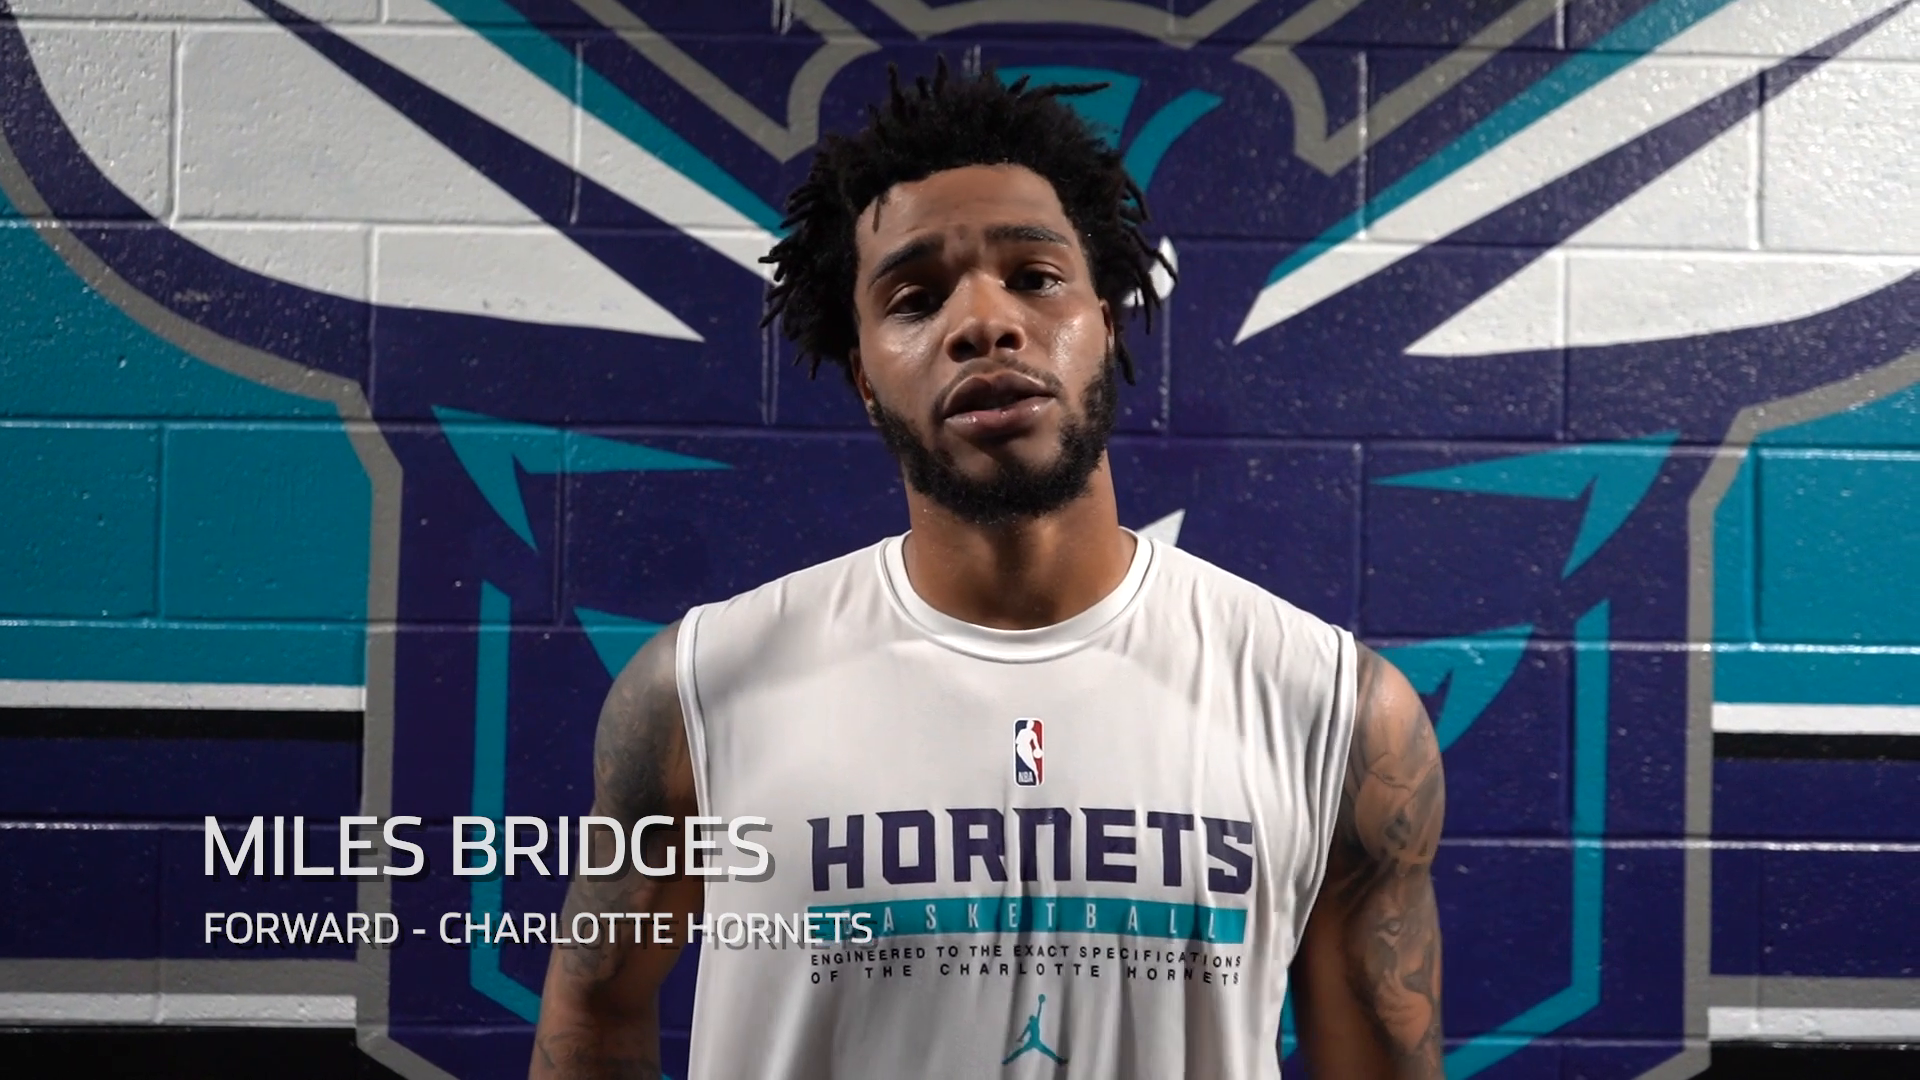 Hornets Organization Excited to See What Surenkamp Can Do in Greensboro